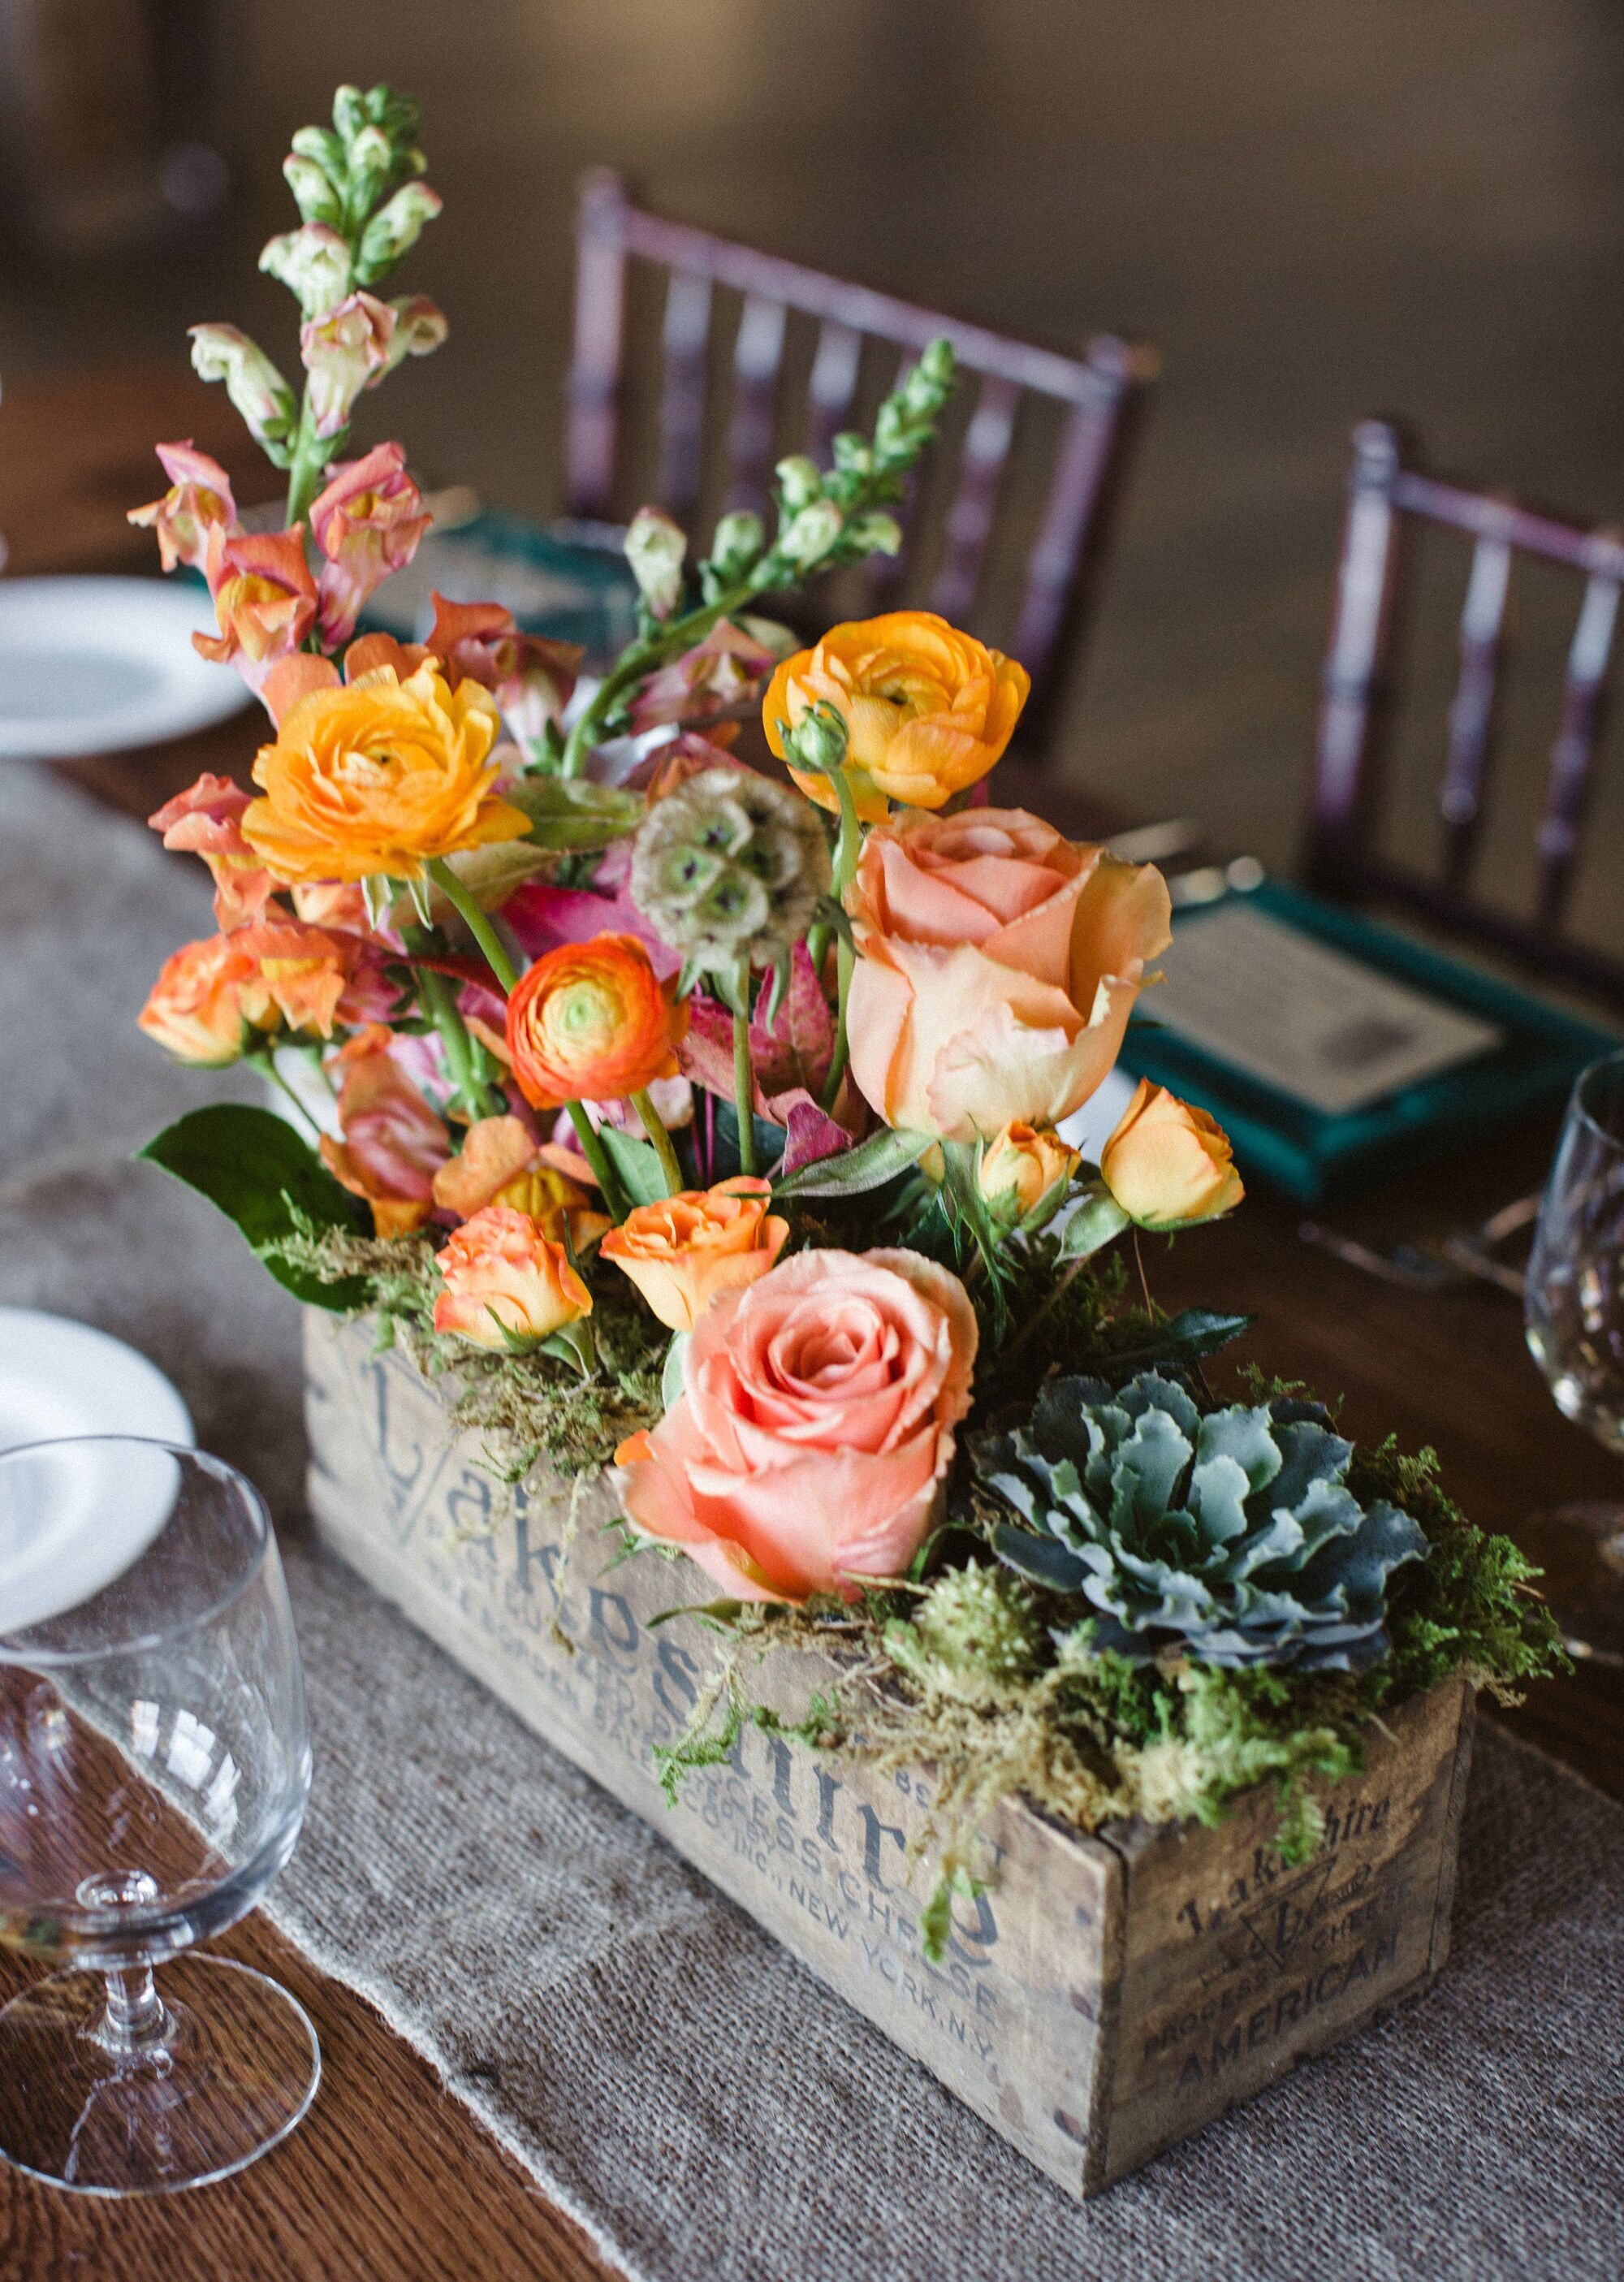 15 Centerpieces You'll Want to Re-Create for Your Wedding Day